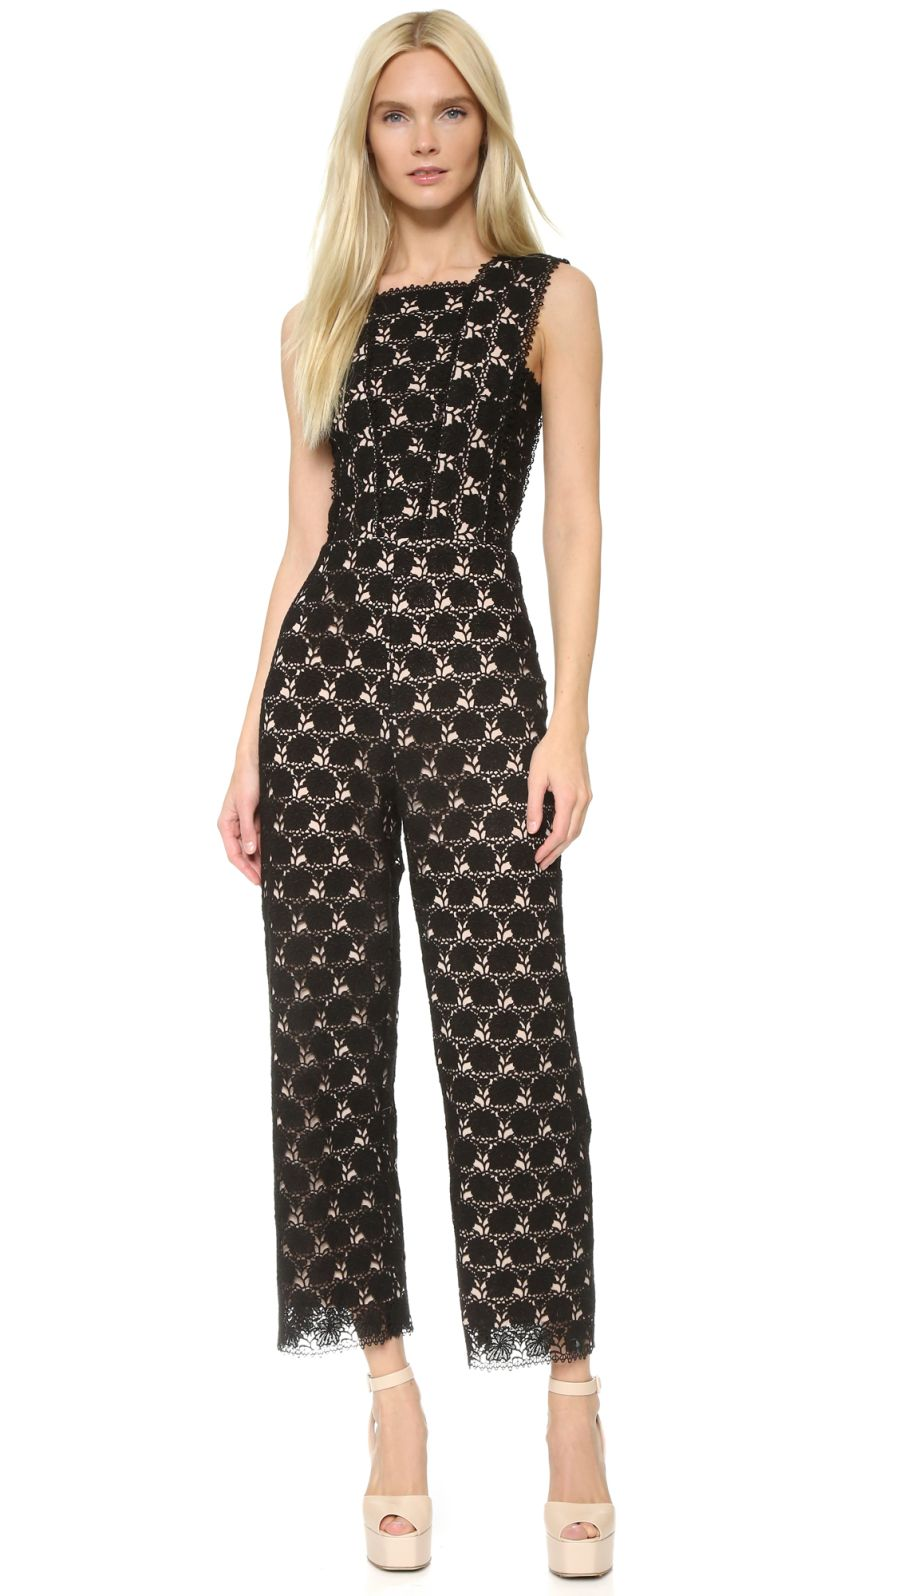 8f9a3b0fc1d7 25 Jumpsuits You Could Totally Get Away With Wearing to a Wedding in ...